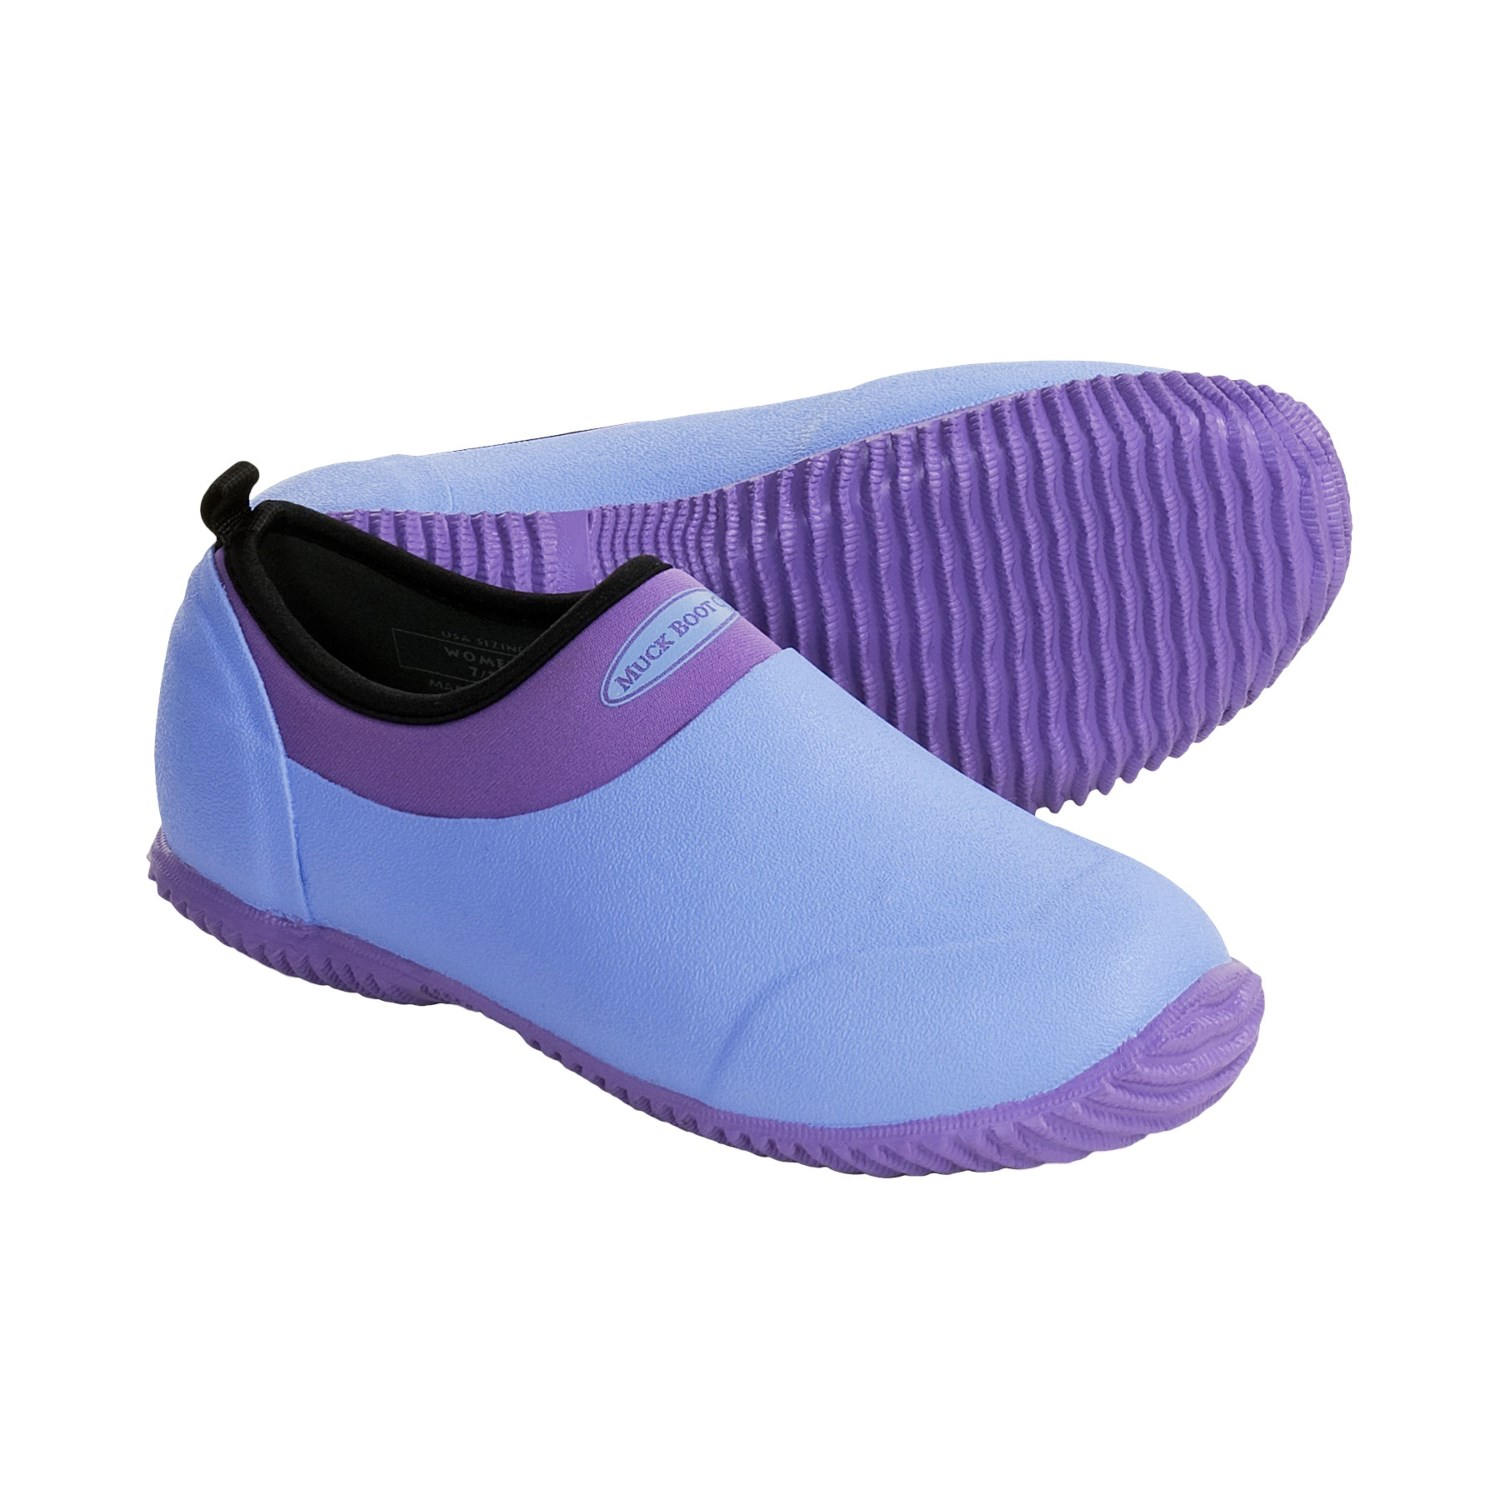 Muck Boot Company Daily Muck Shoes - Rubber (For Women) - Save 80